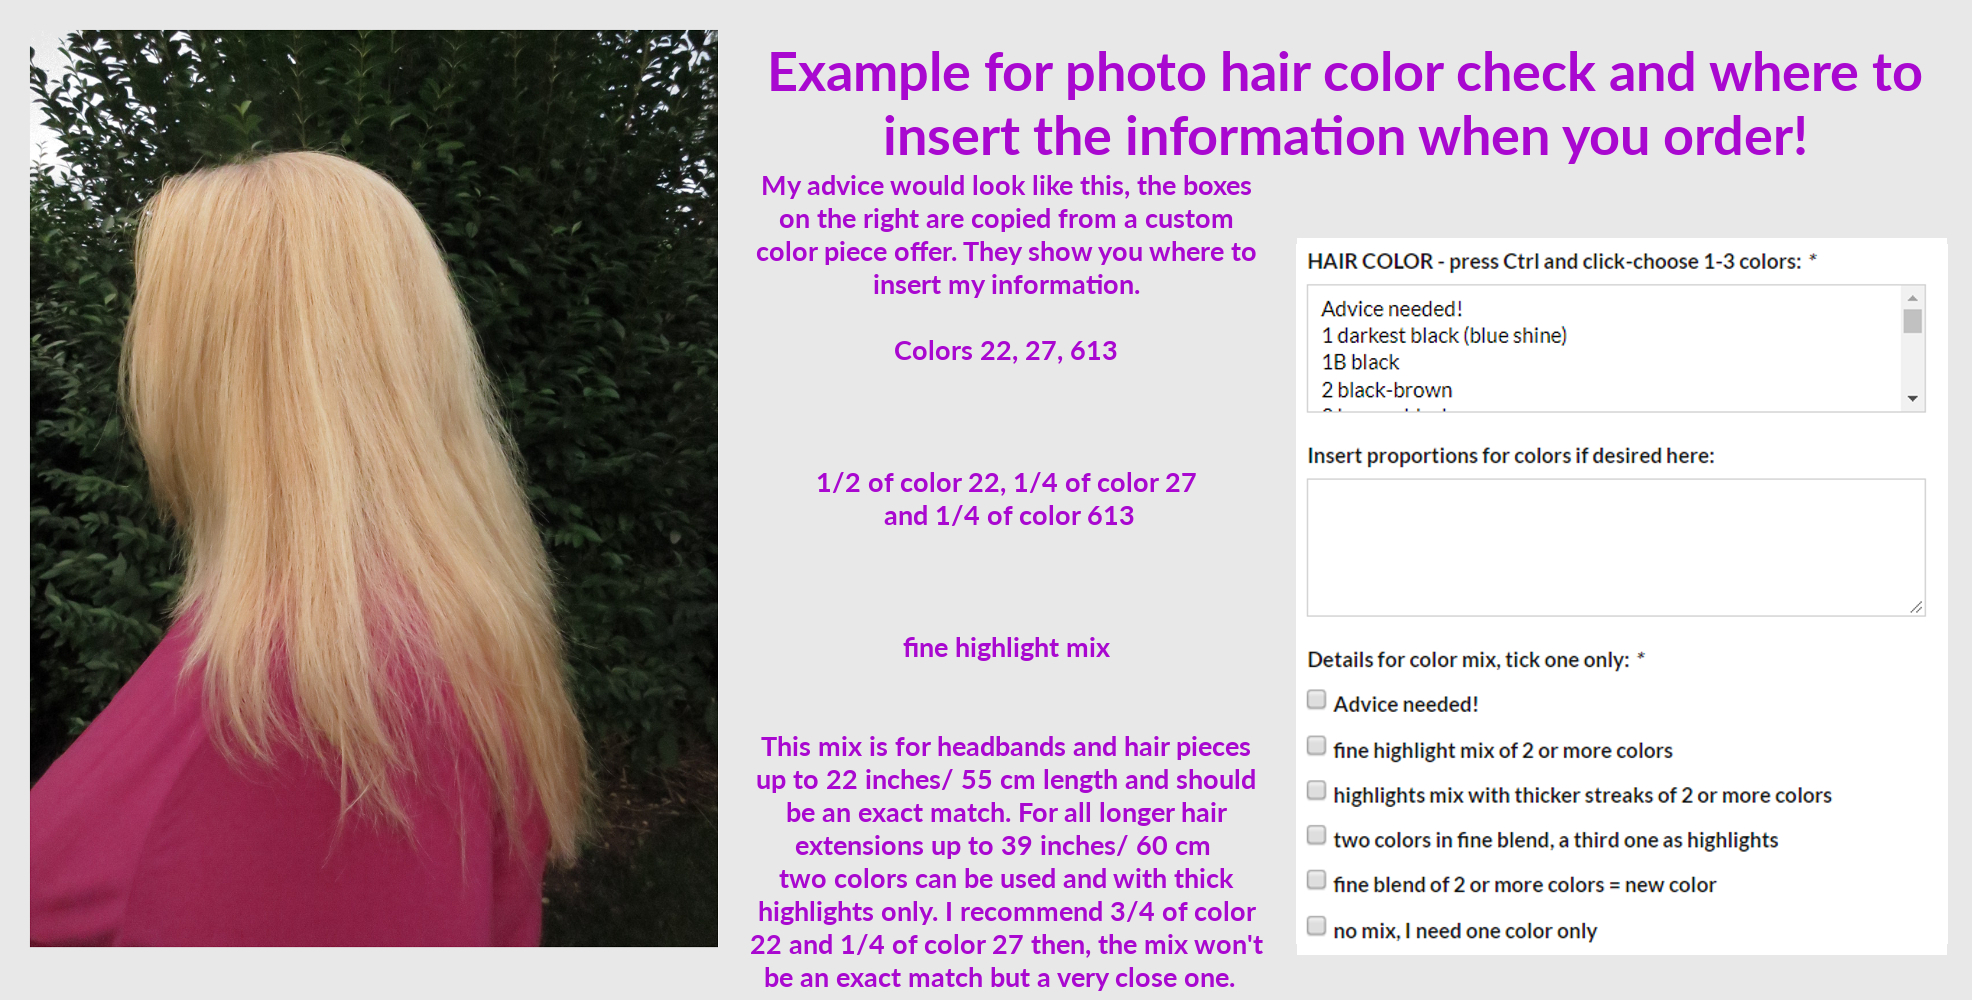 Example for picture hair color check and how to order!